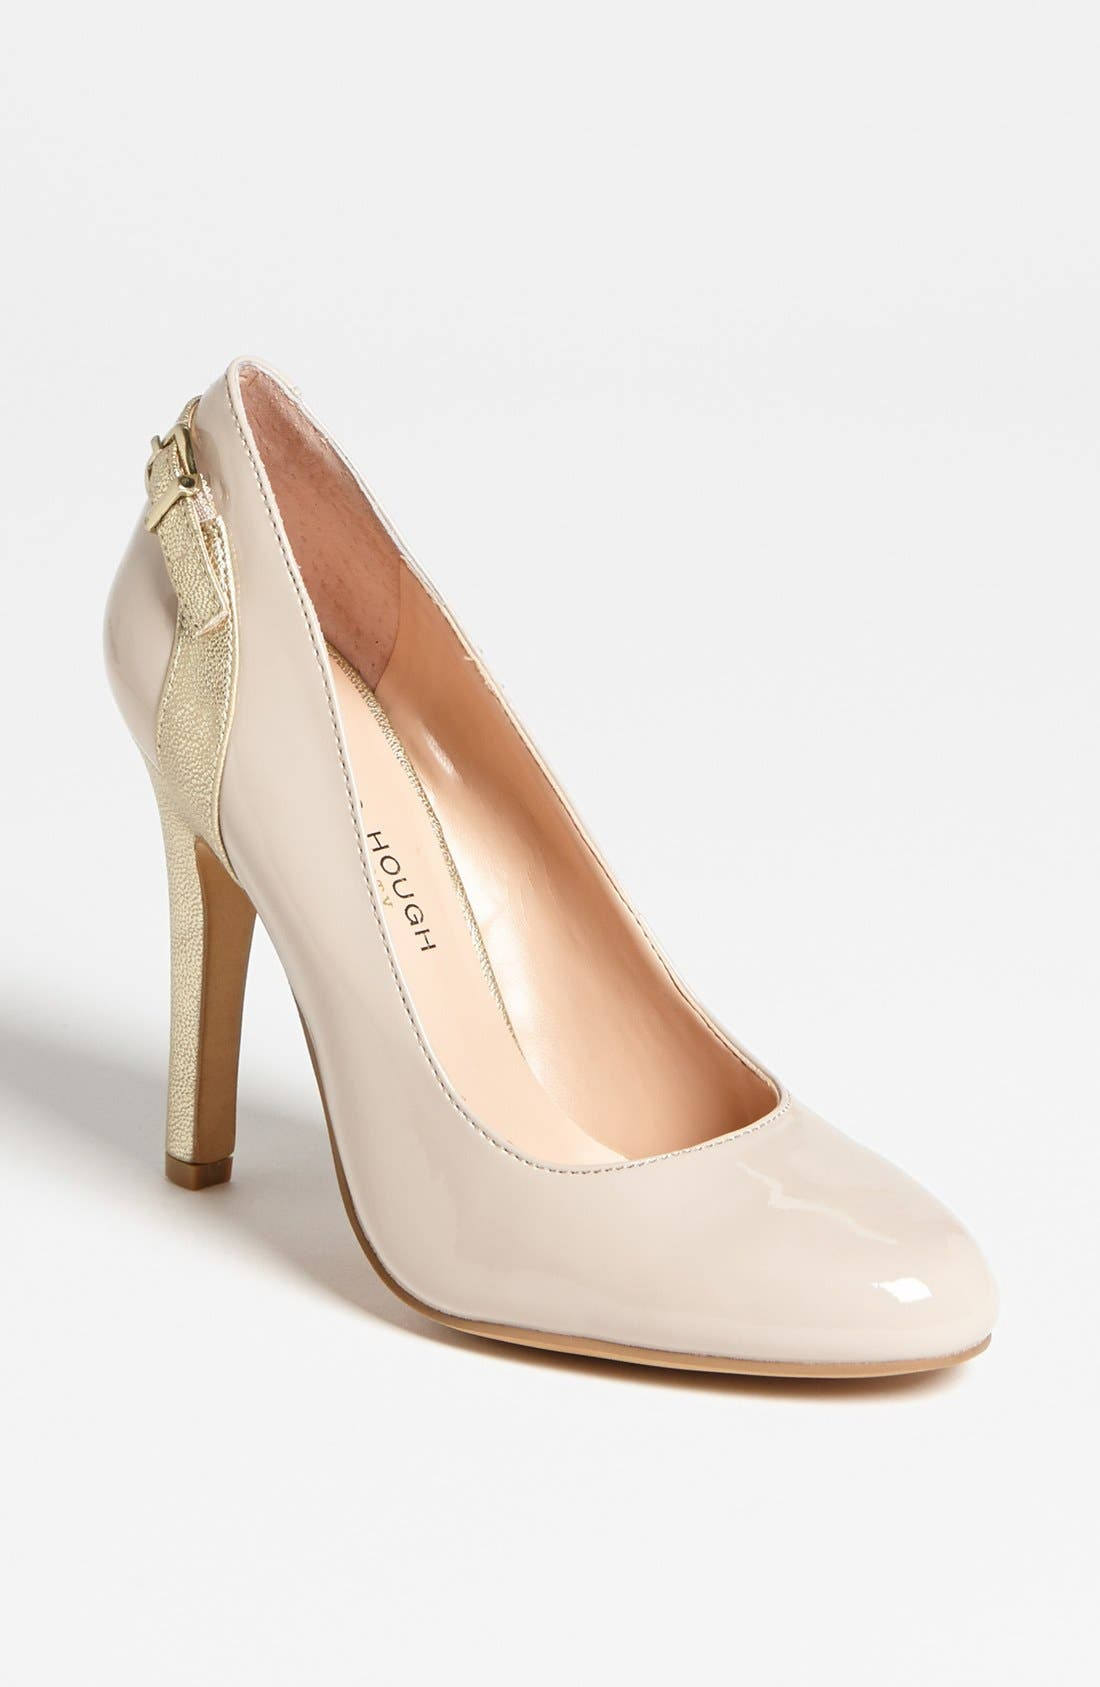 Main Image - Julianne Hough for Sole Society 'Jelena' Pump